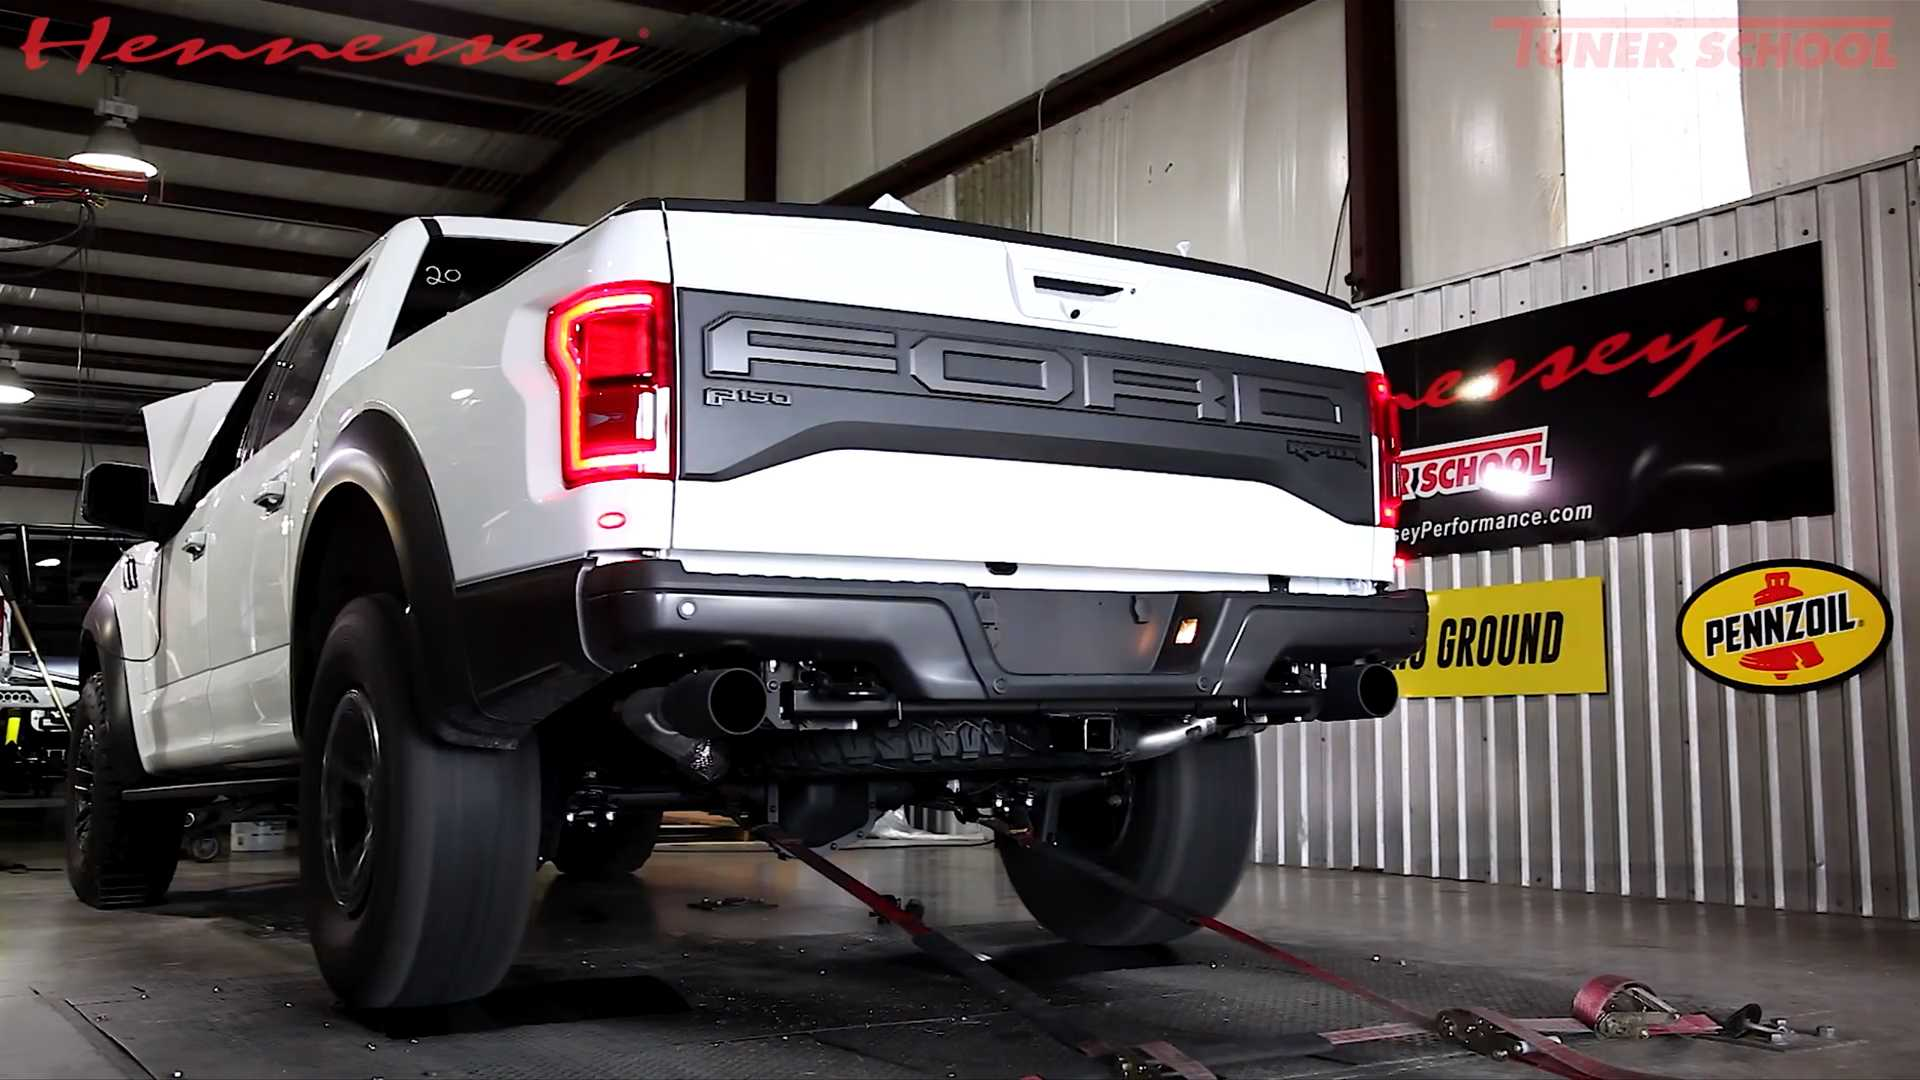 2019 Ford F150 Release Date, Price, Concept, Specs >> 2019 Ford Raptor Dyno Test Shows 353 Rear Wheel Horsepower